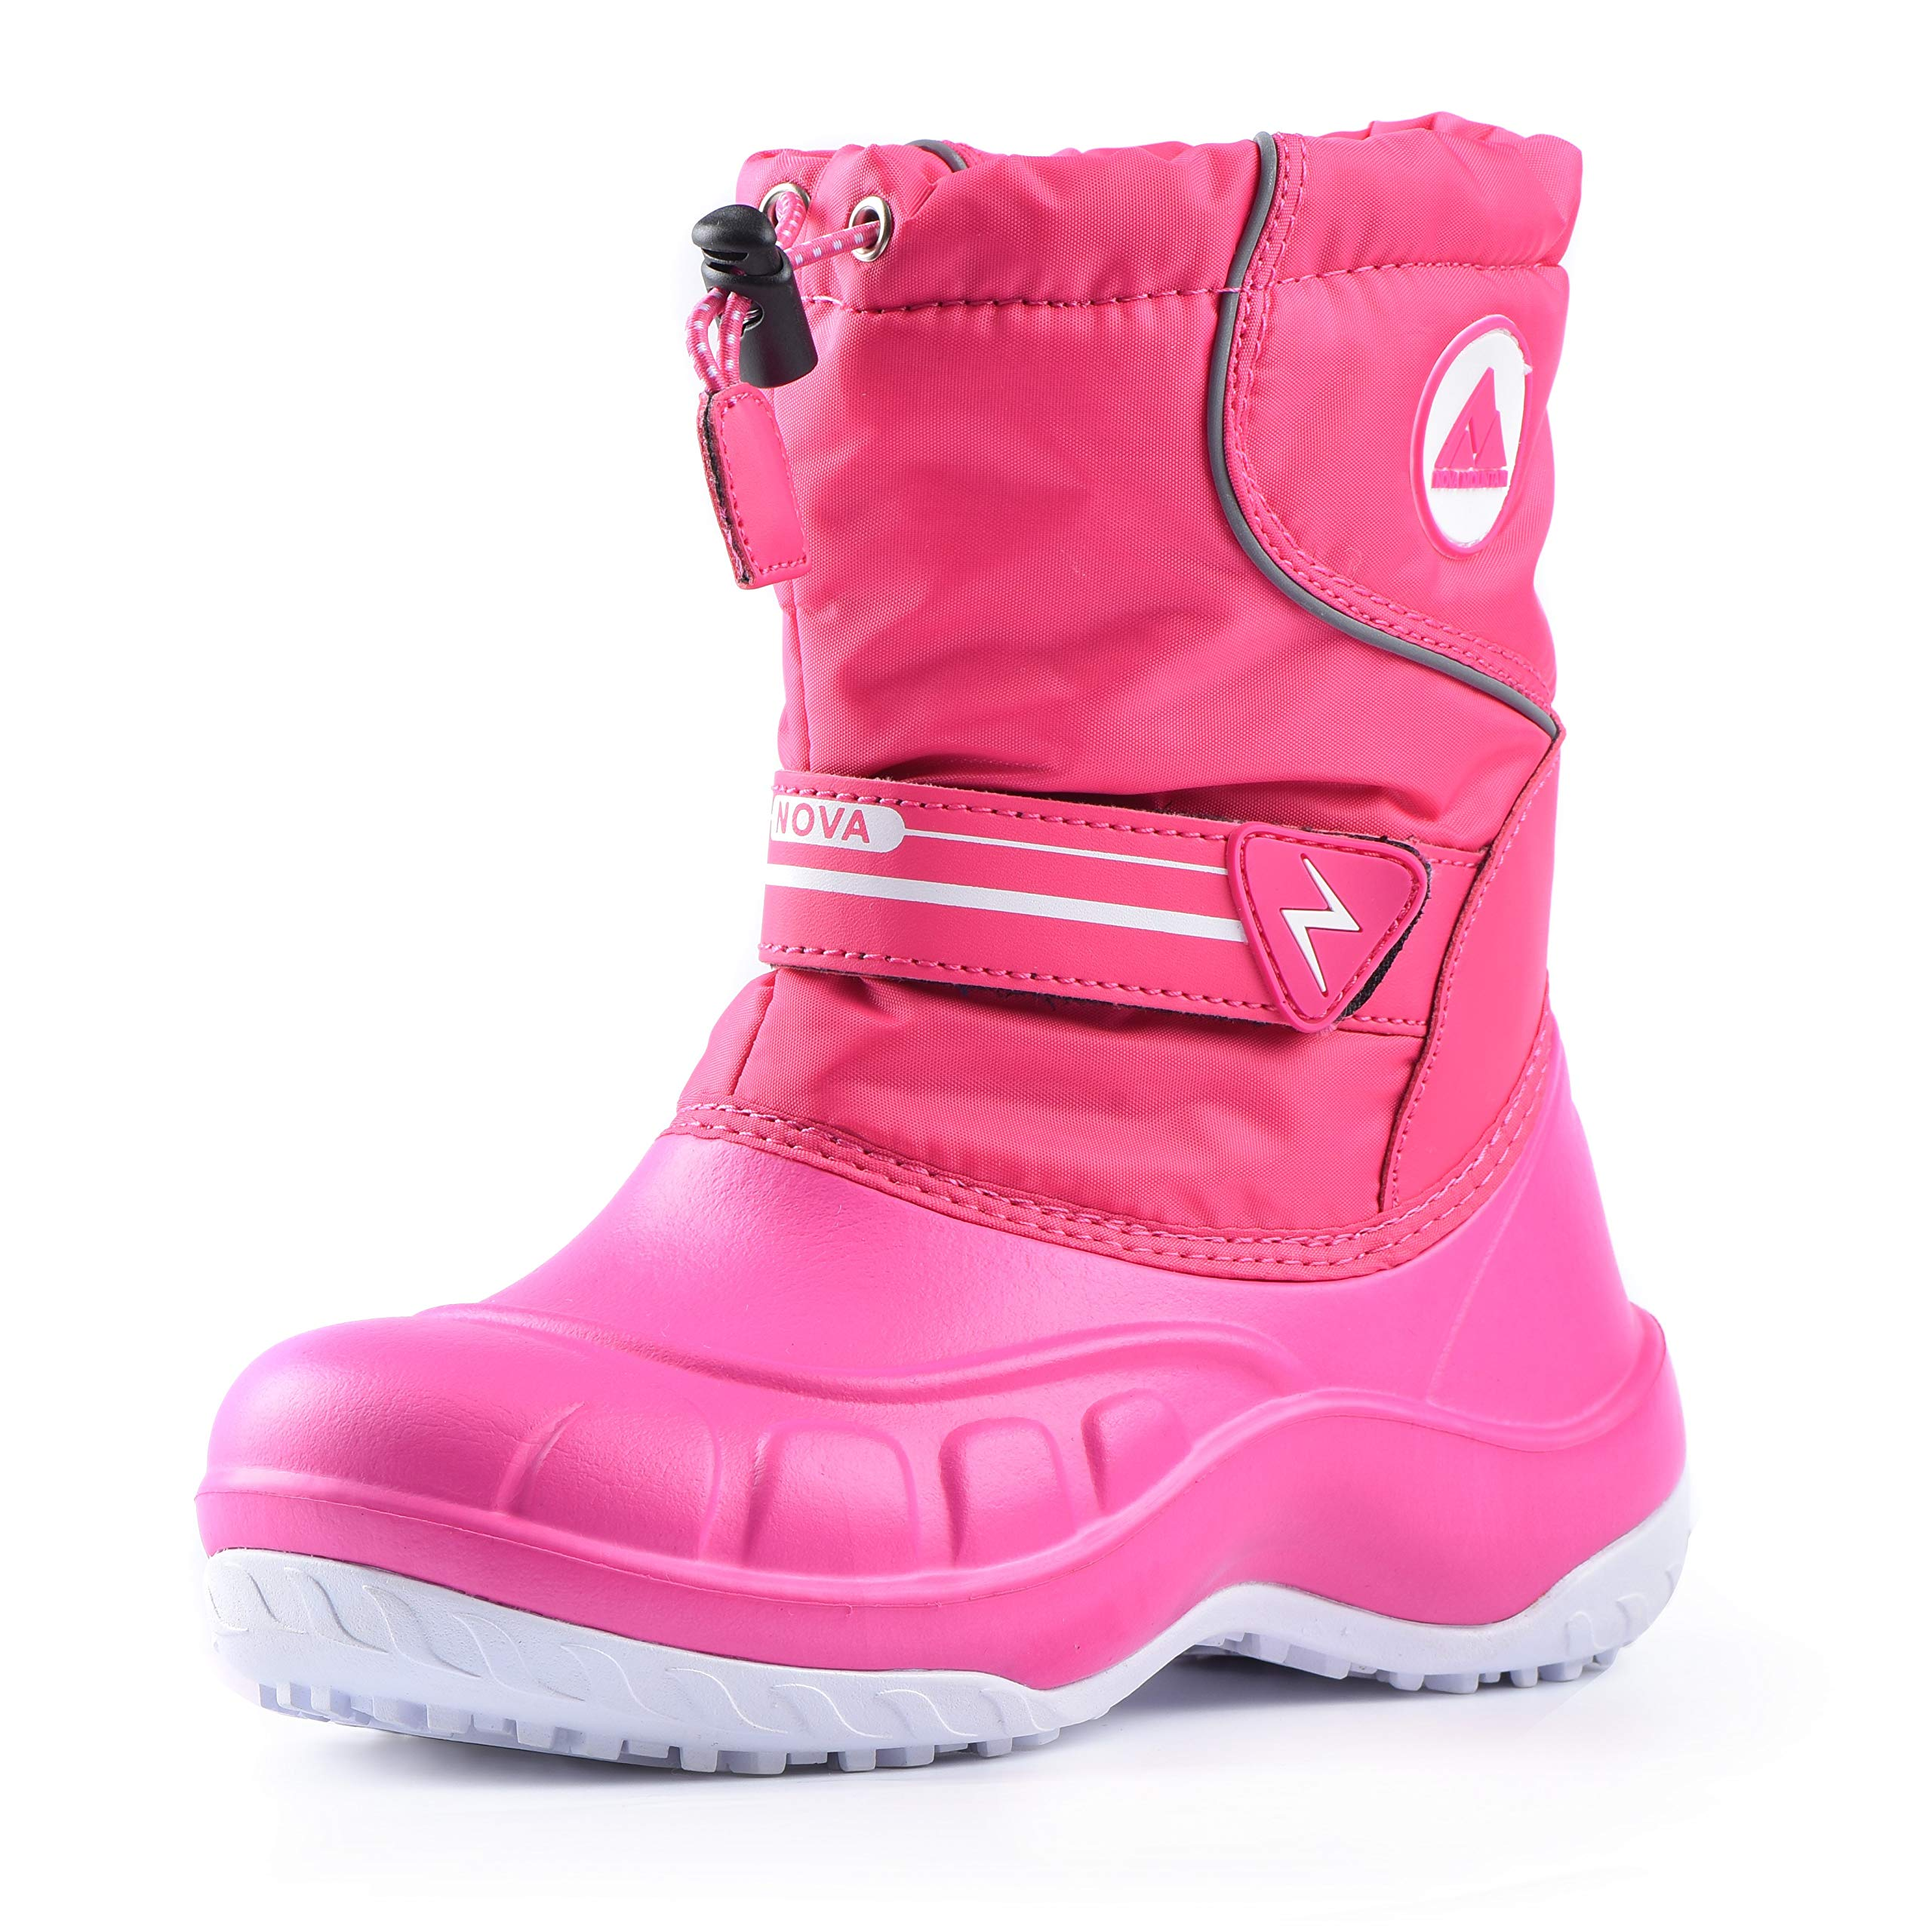 0b3b6a6a708d Nova Mountain Boy s and Girl s Waterproof Winter Snow Boots product image